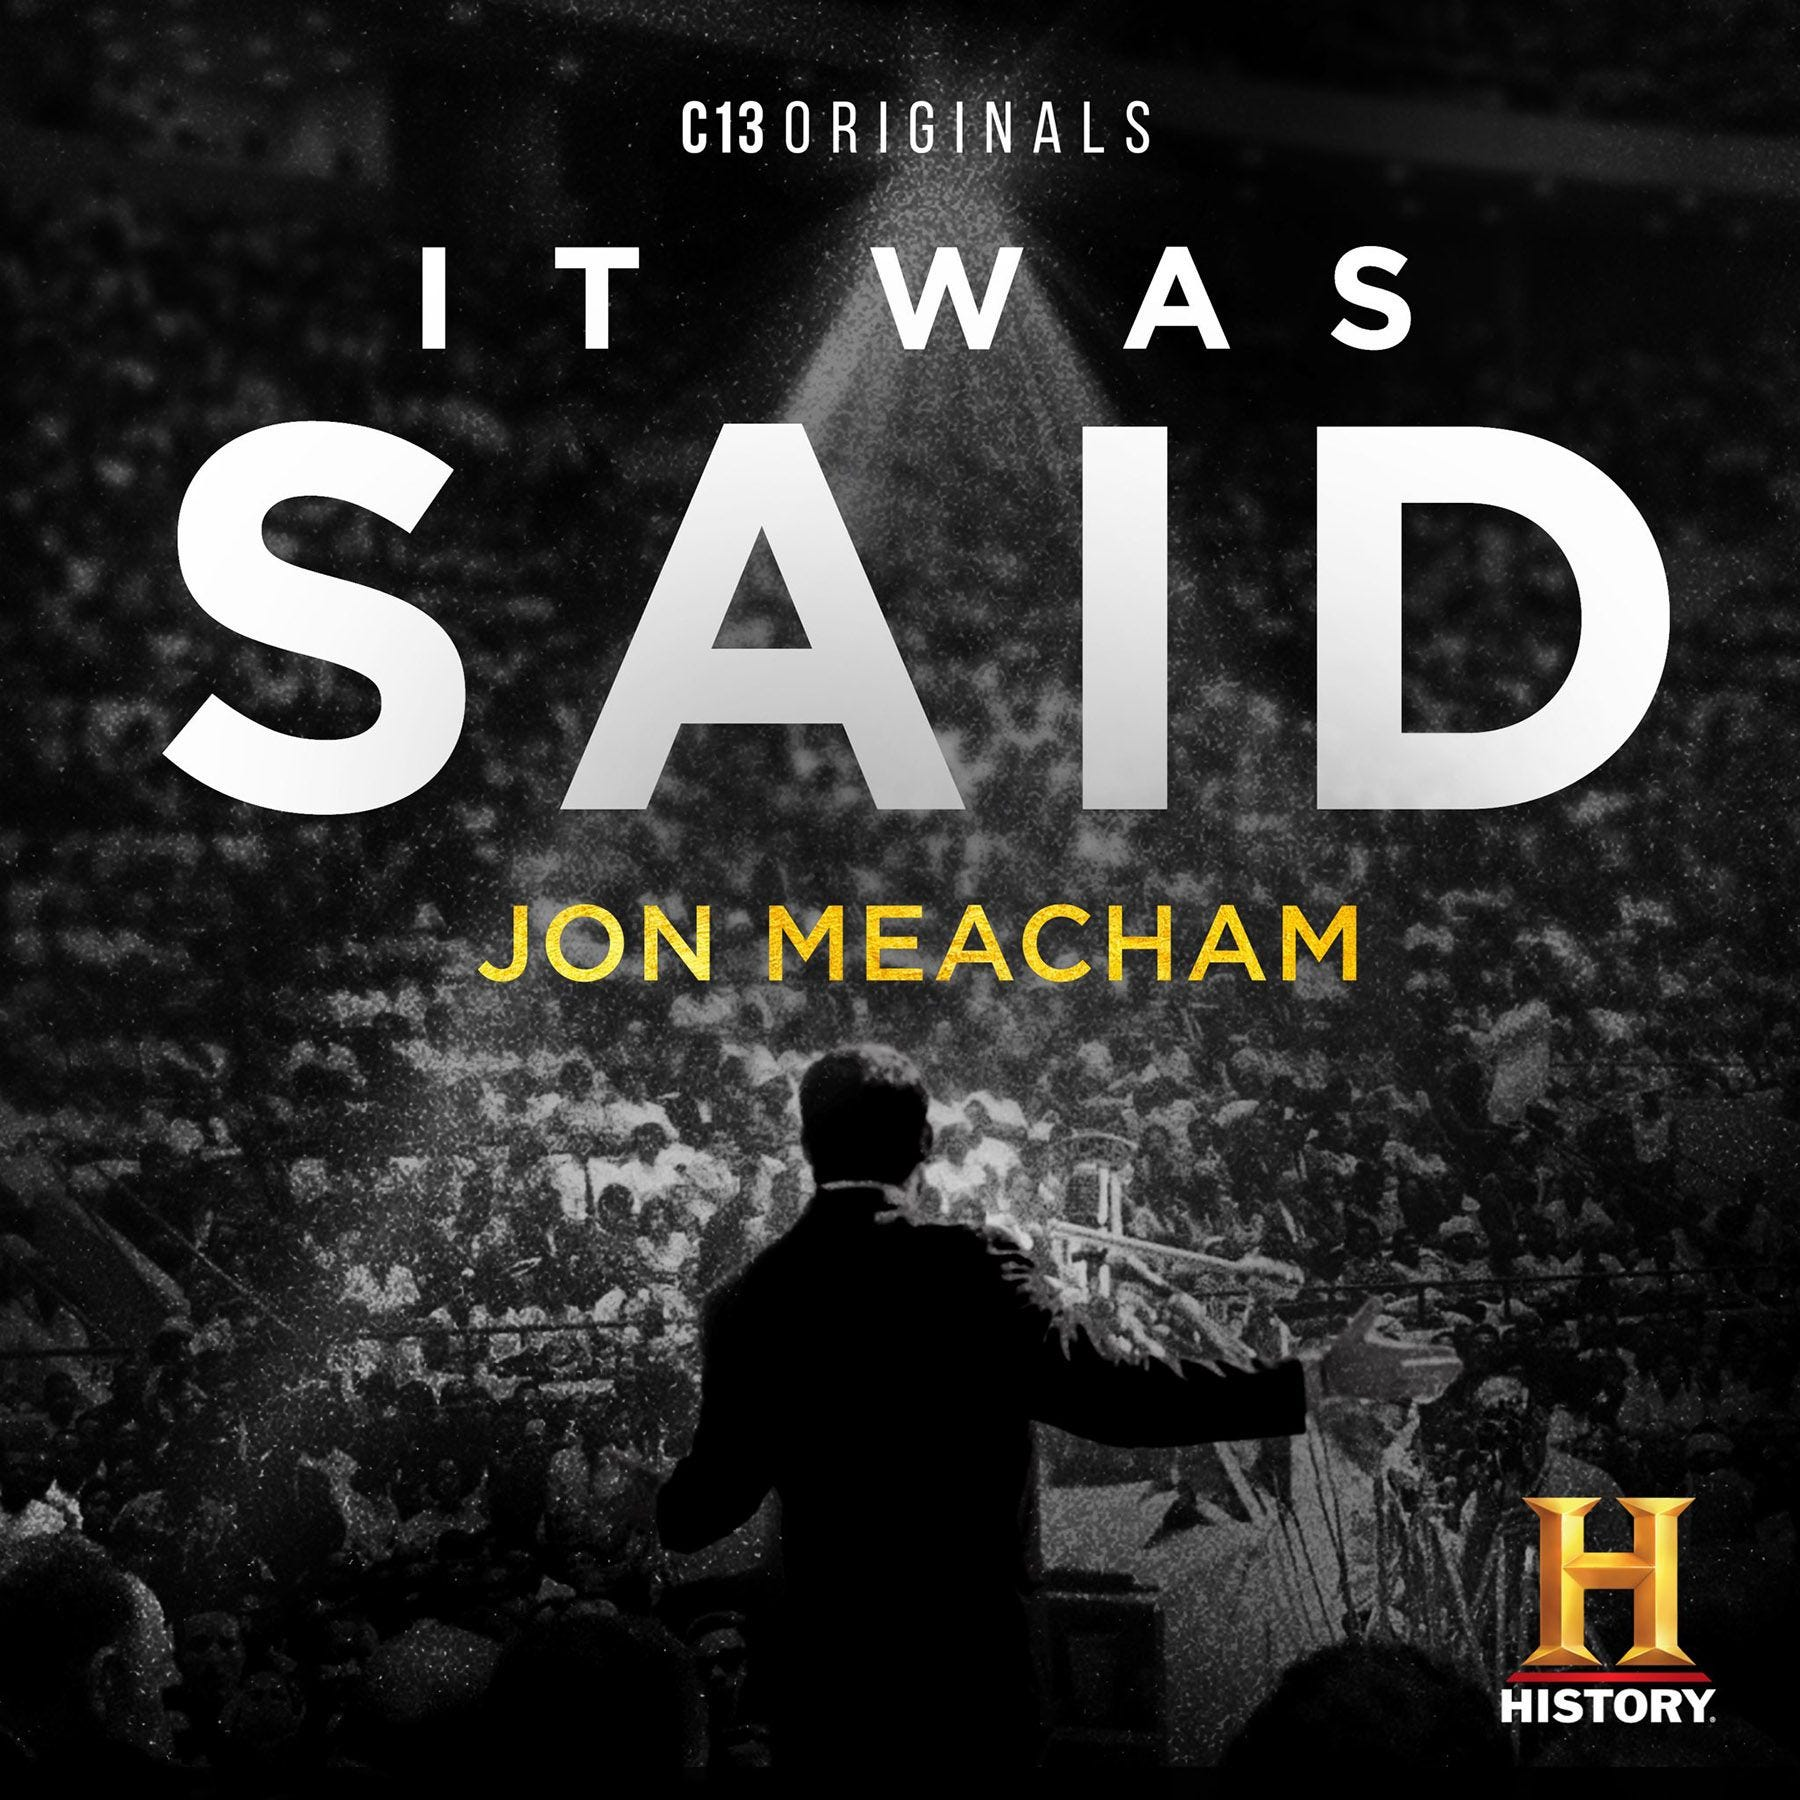 """The podcast art for the show It Was Said, featuring a photograph of a man giving a speech, with a spotlight on the man. """"It Was Said"""" is in large white capital letters, and the host's name is in smaller capital letters in yellow. The History Channel logo is in the bottom right corner."""